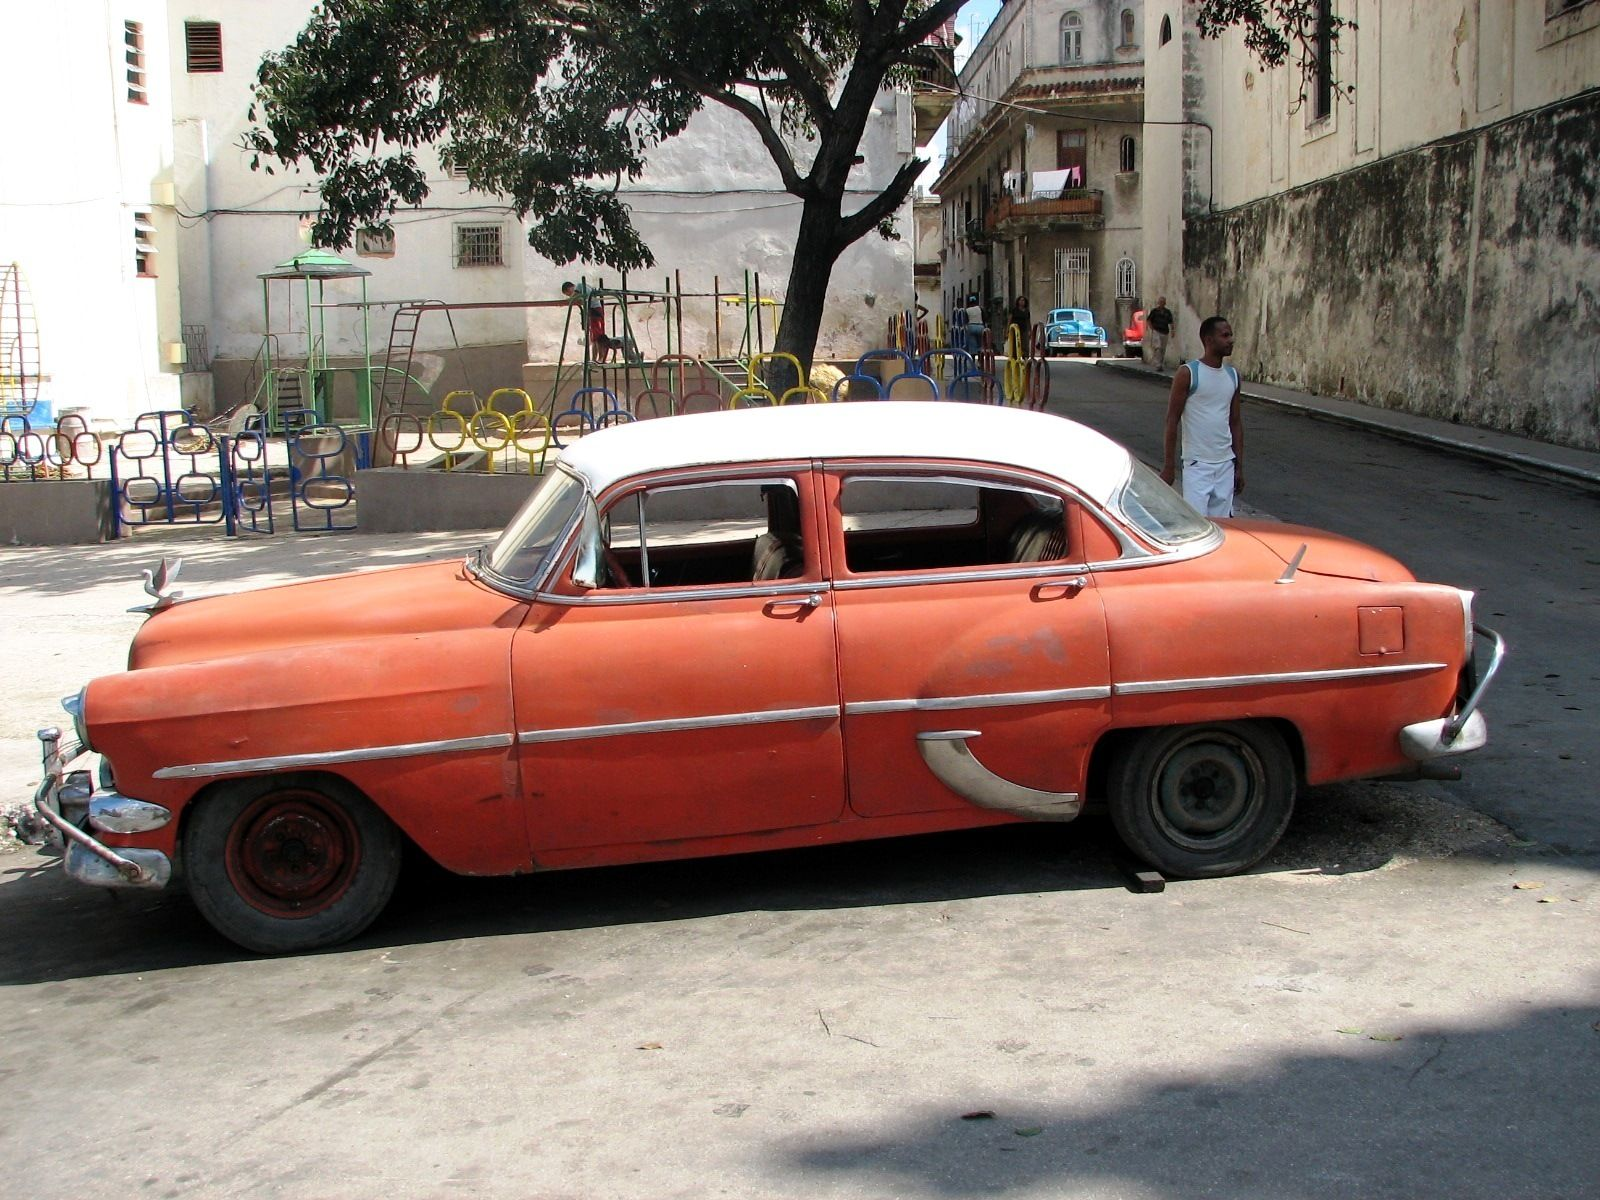 Havana Streets | The Beauty of Old Cars